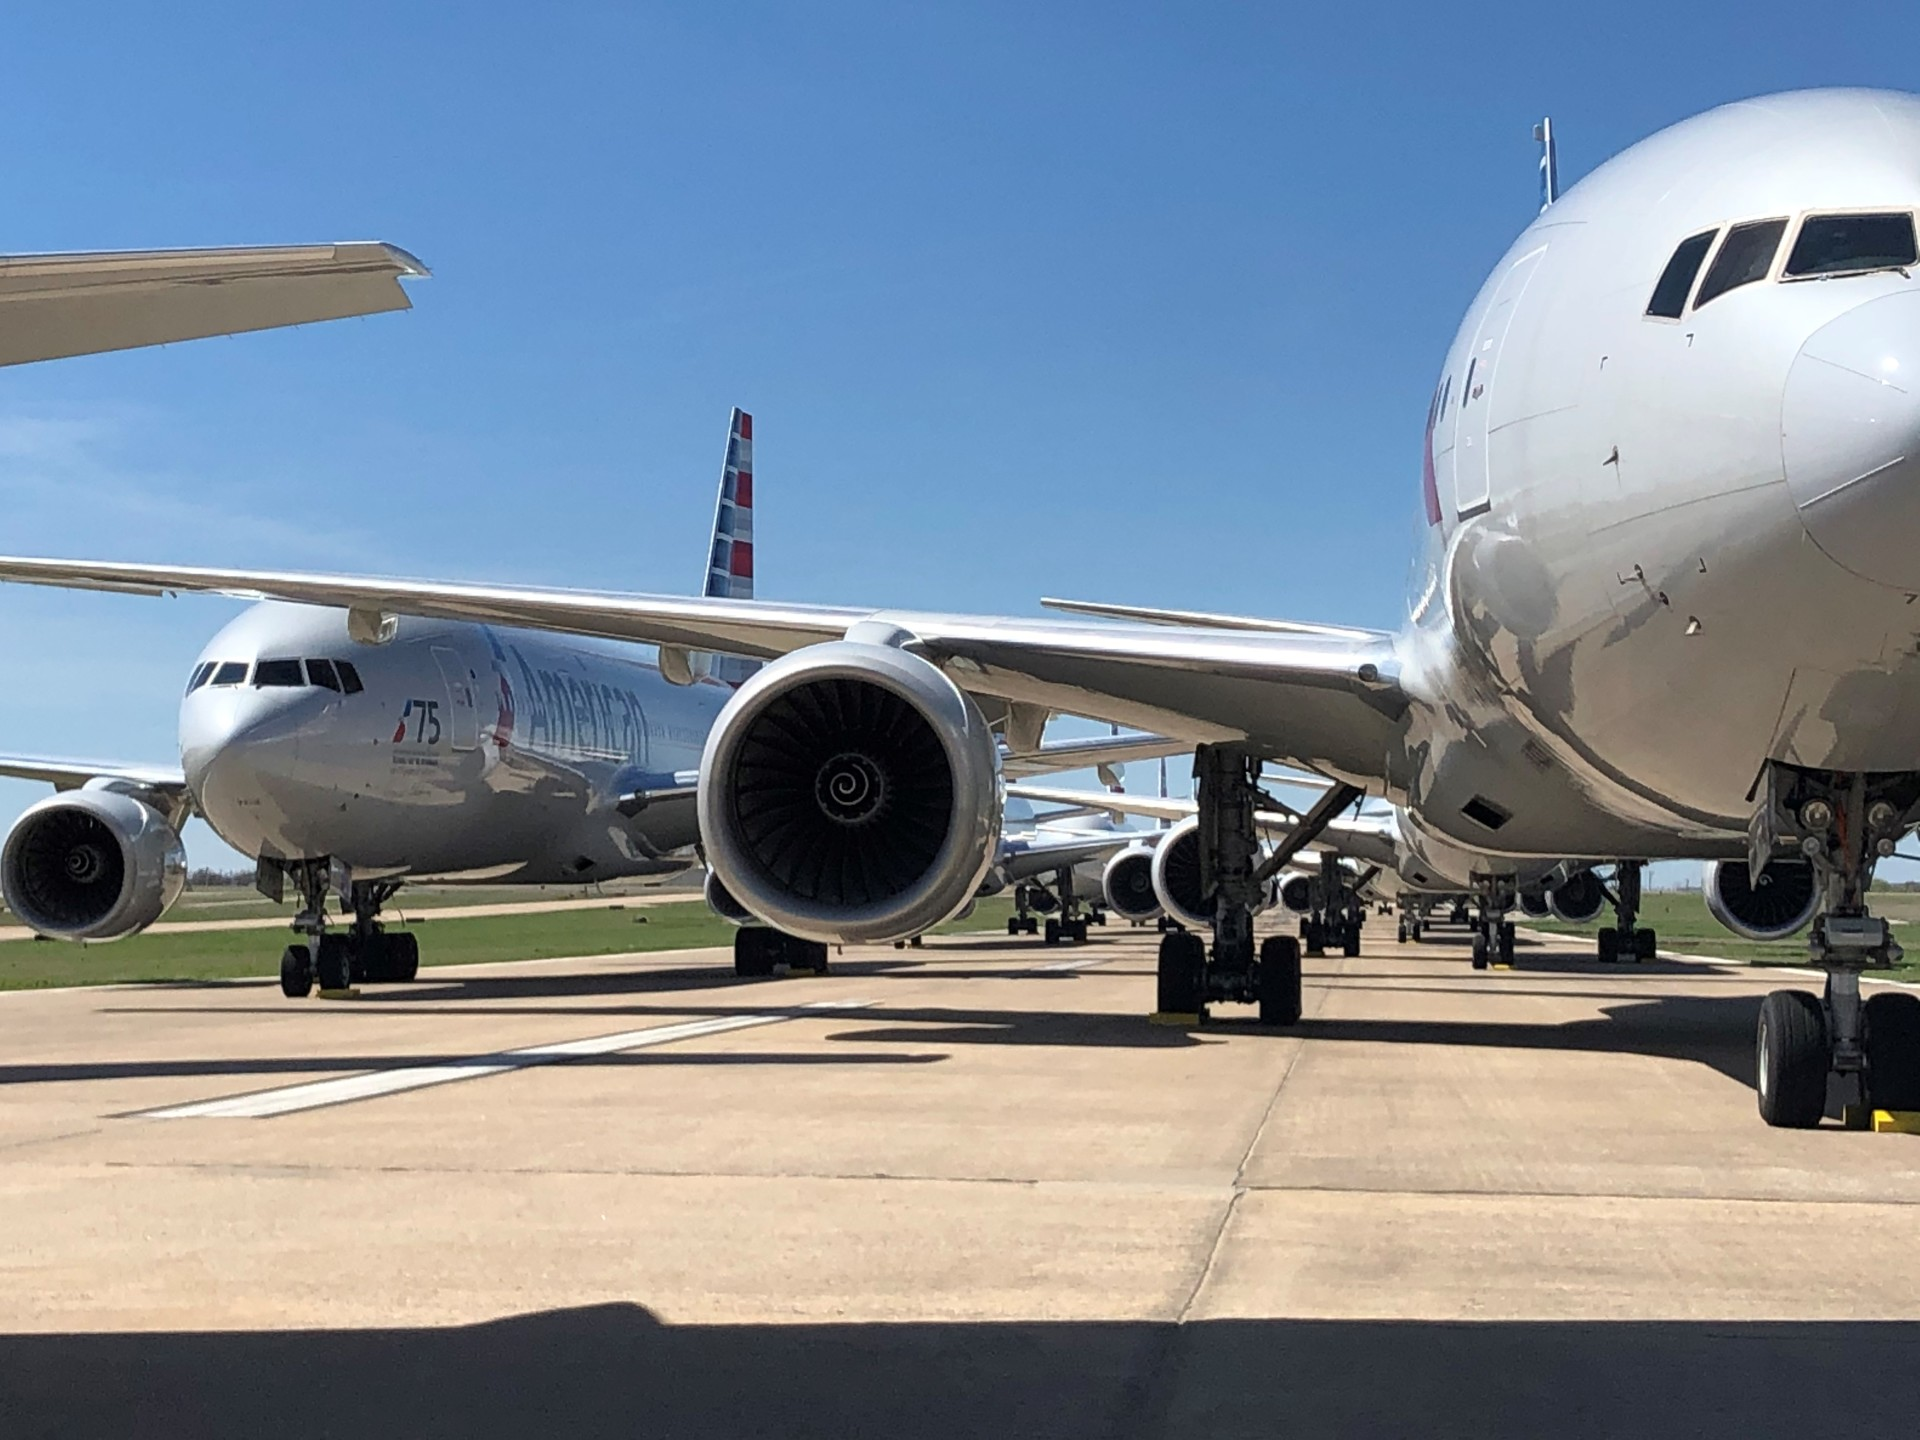 American Airlines Tulsa